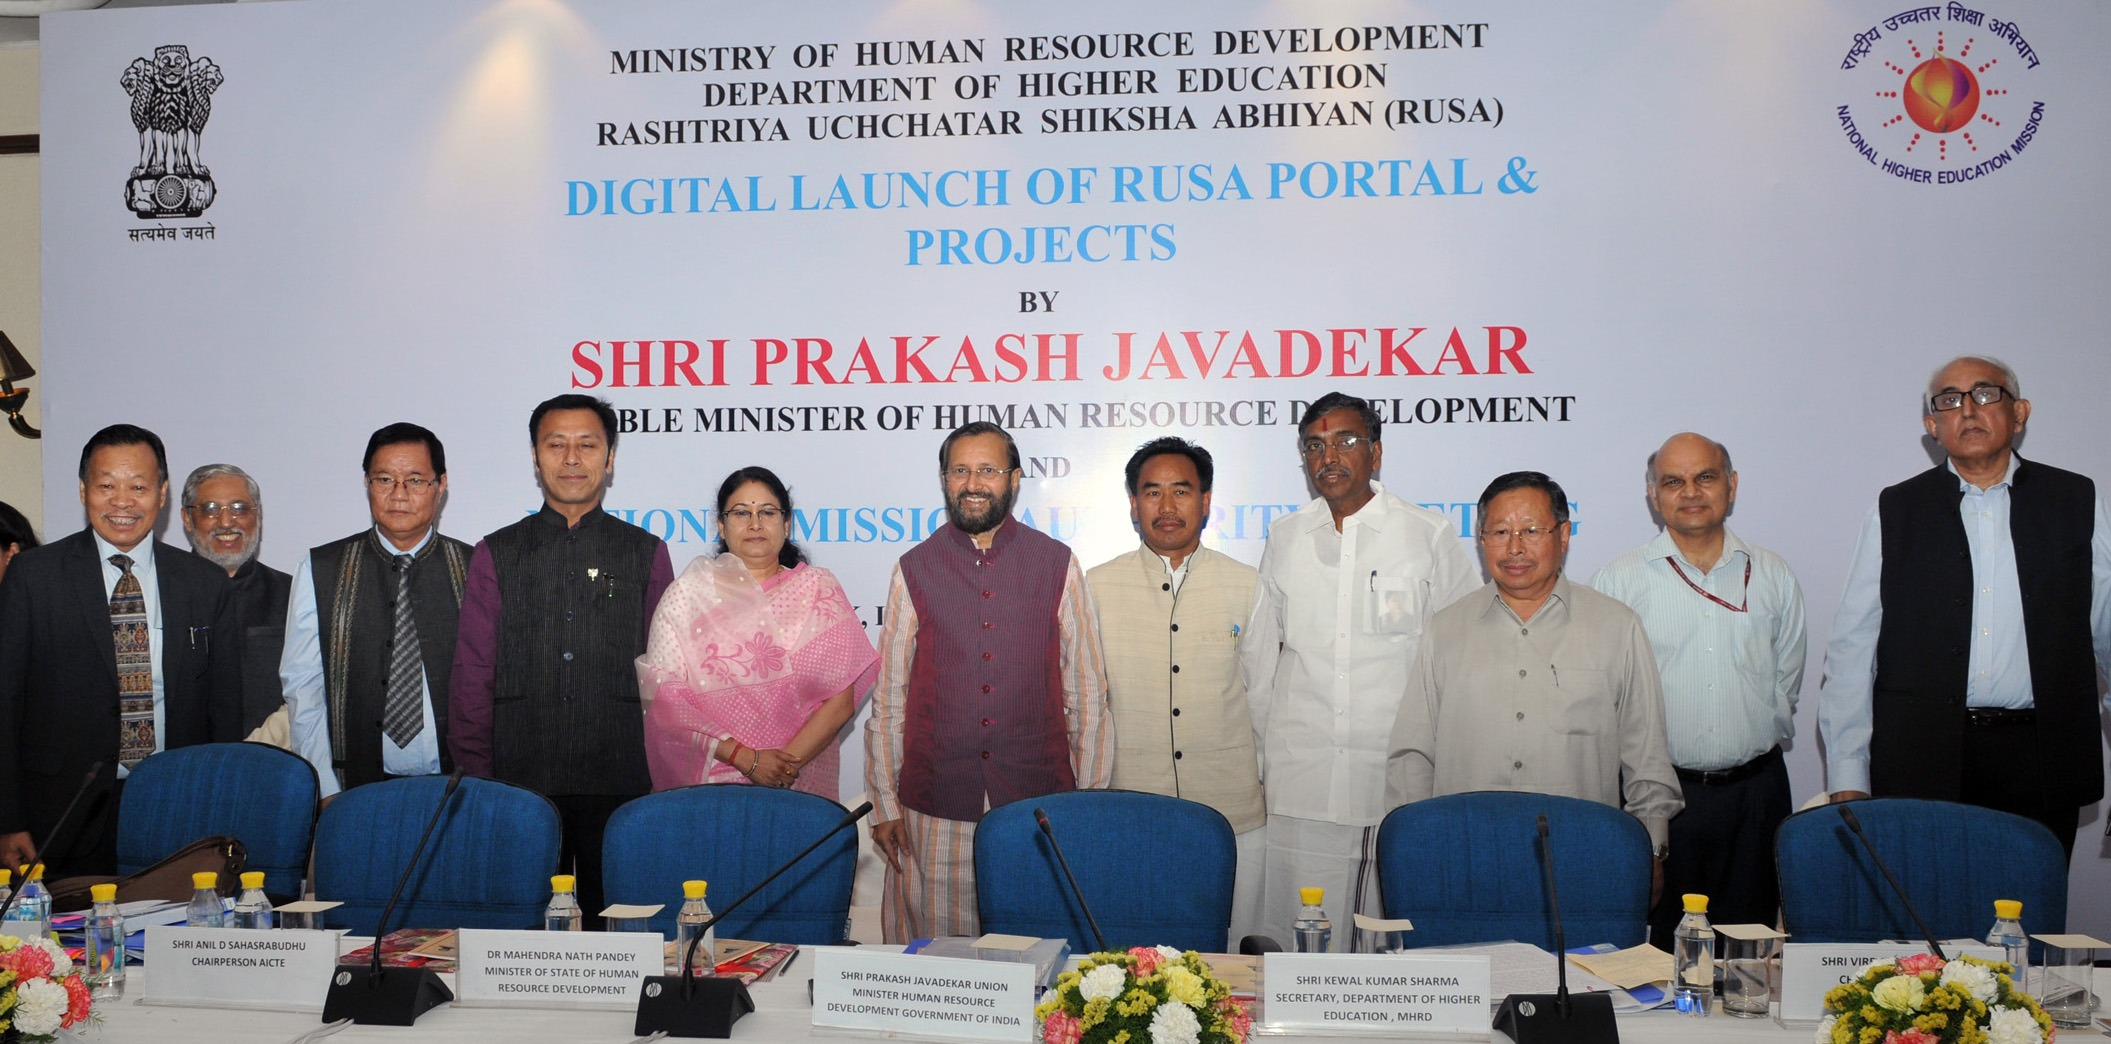 The Union Minister for Human Resource Development, Shri Prakash Javadekar in a group photograph, at the launch of the unique portal and mobile app of Rashtriya Uchchatar Shiksha Abhiyan (RUSA), a body under the aegis of the Ministry of Human Resource Development, in New Delhi on April 17, 2017.